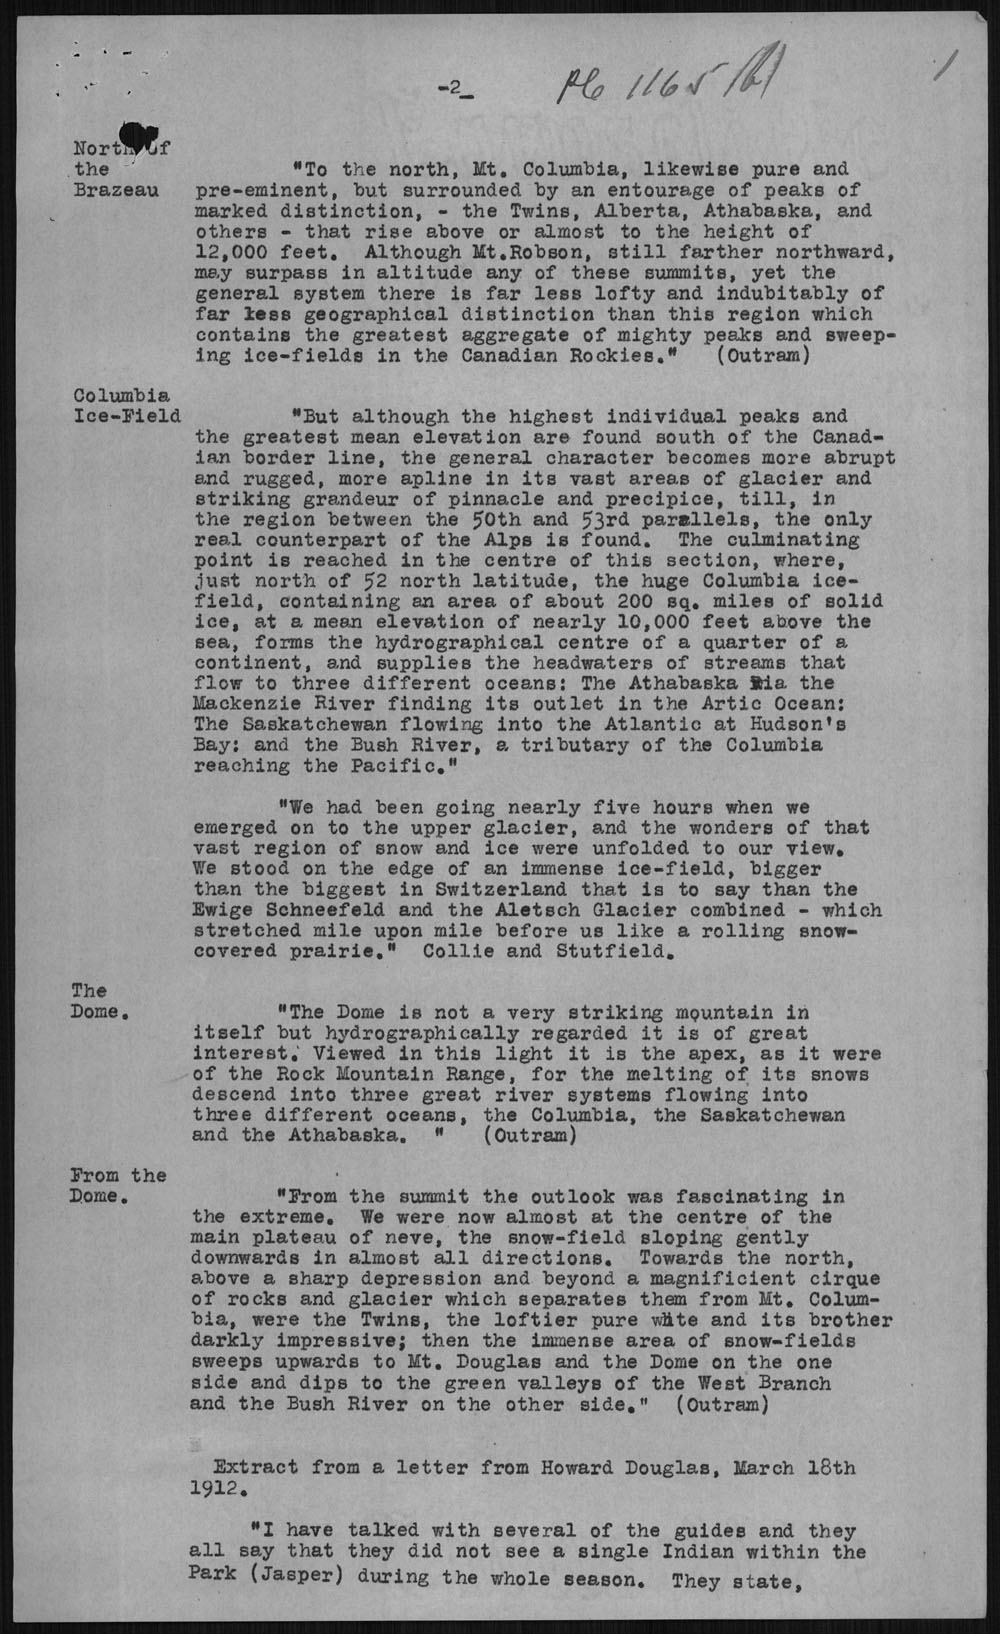 Digitized page of Orders in Council for Image No.: e010877247-v8